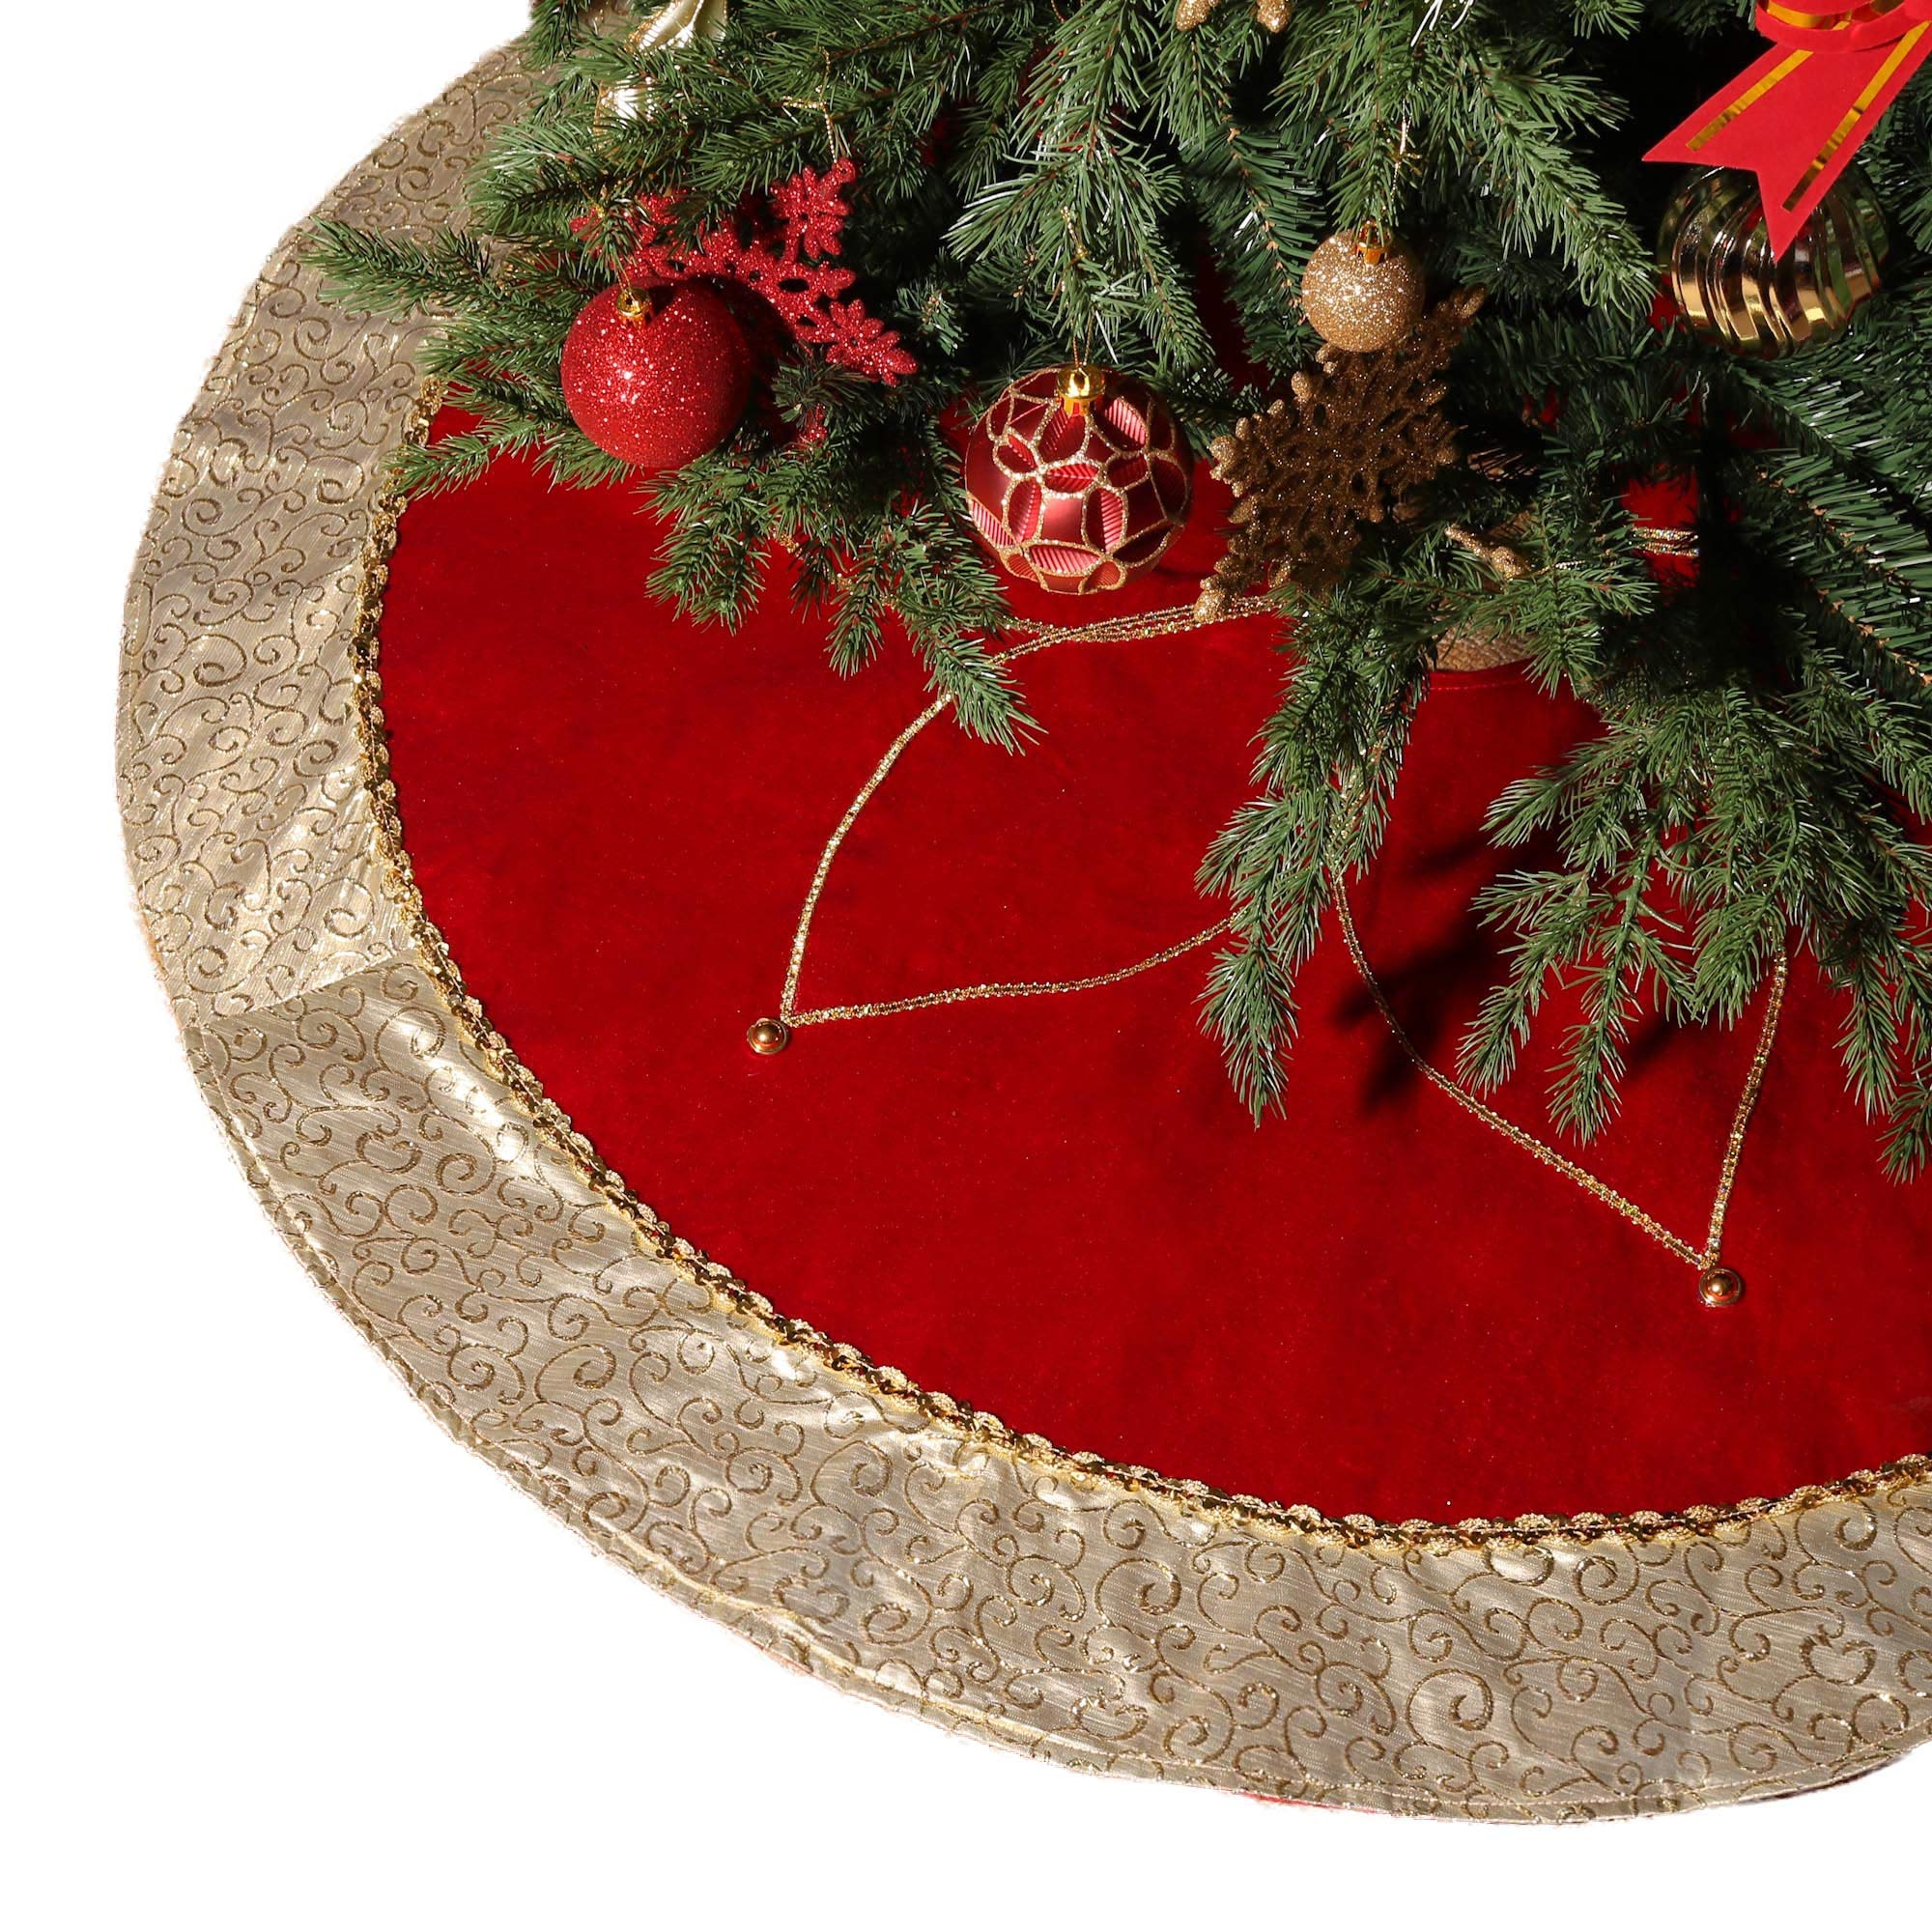 Red And Gold Christmas Trees: Valery Madelyn 48 Inch Luxury Red Gold Christmas Tree